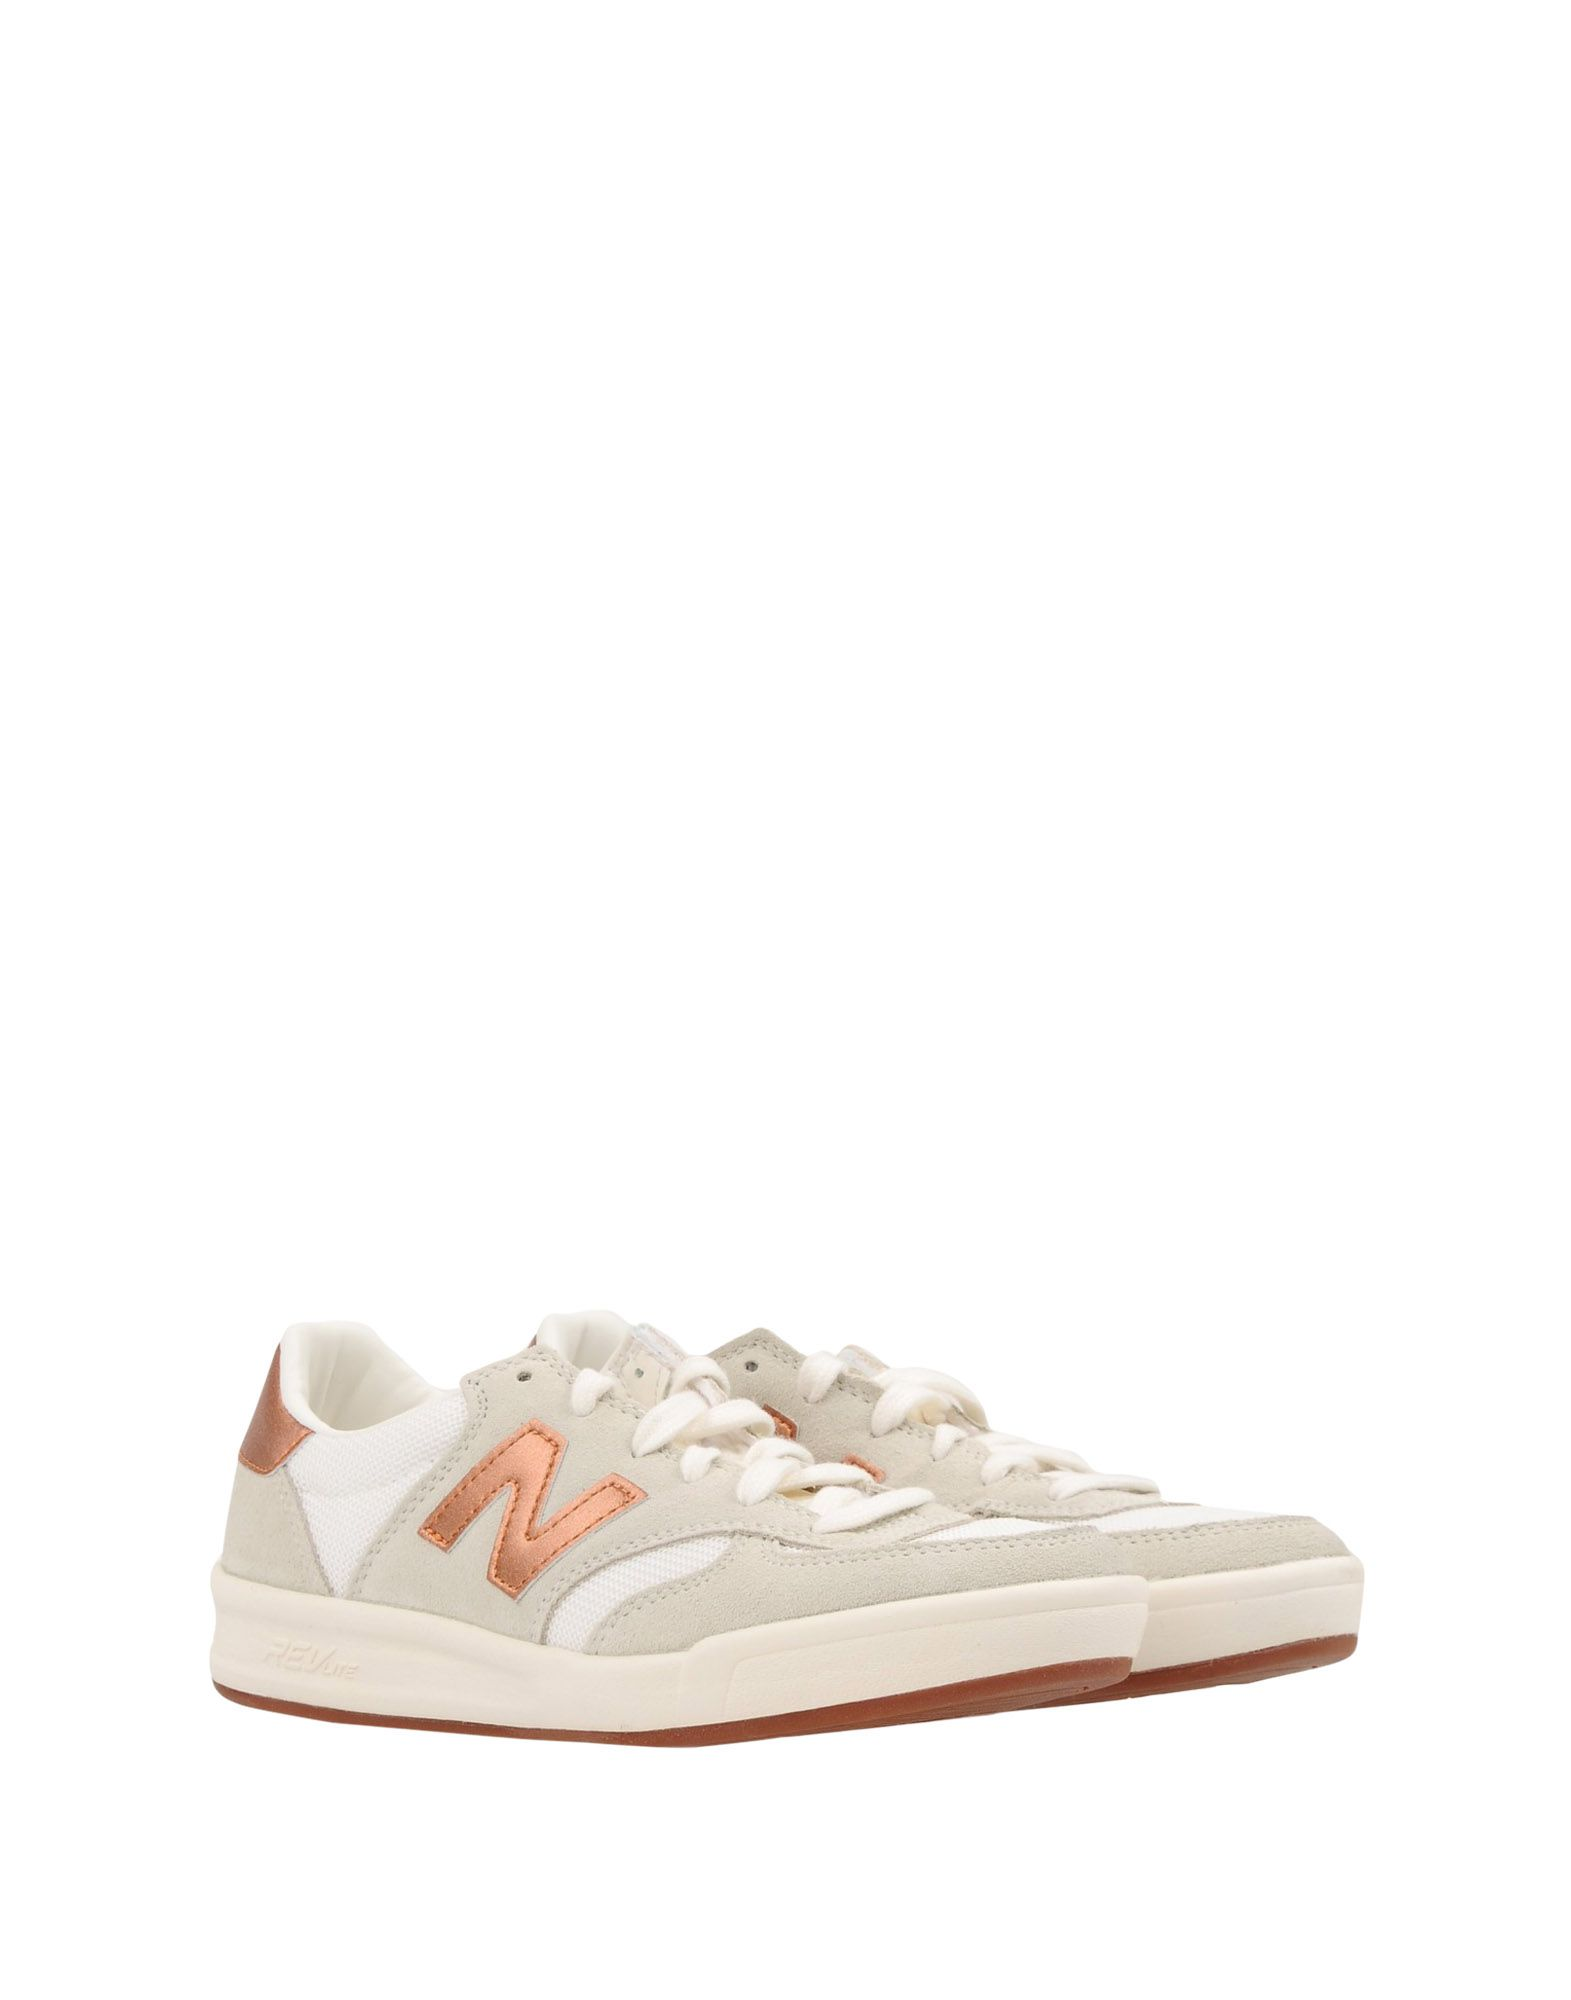 Sneakers New Balance 300 Gold Details - Femme - Sneakers New Balance sur